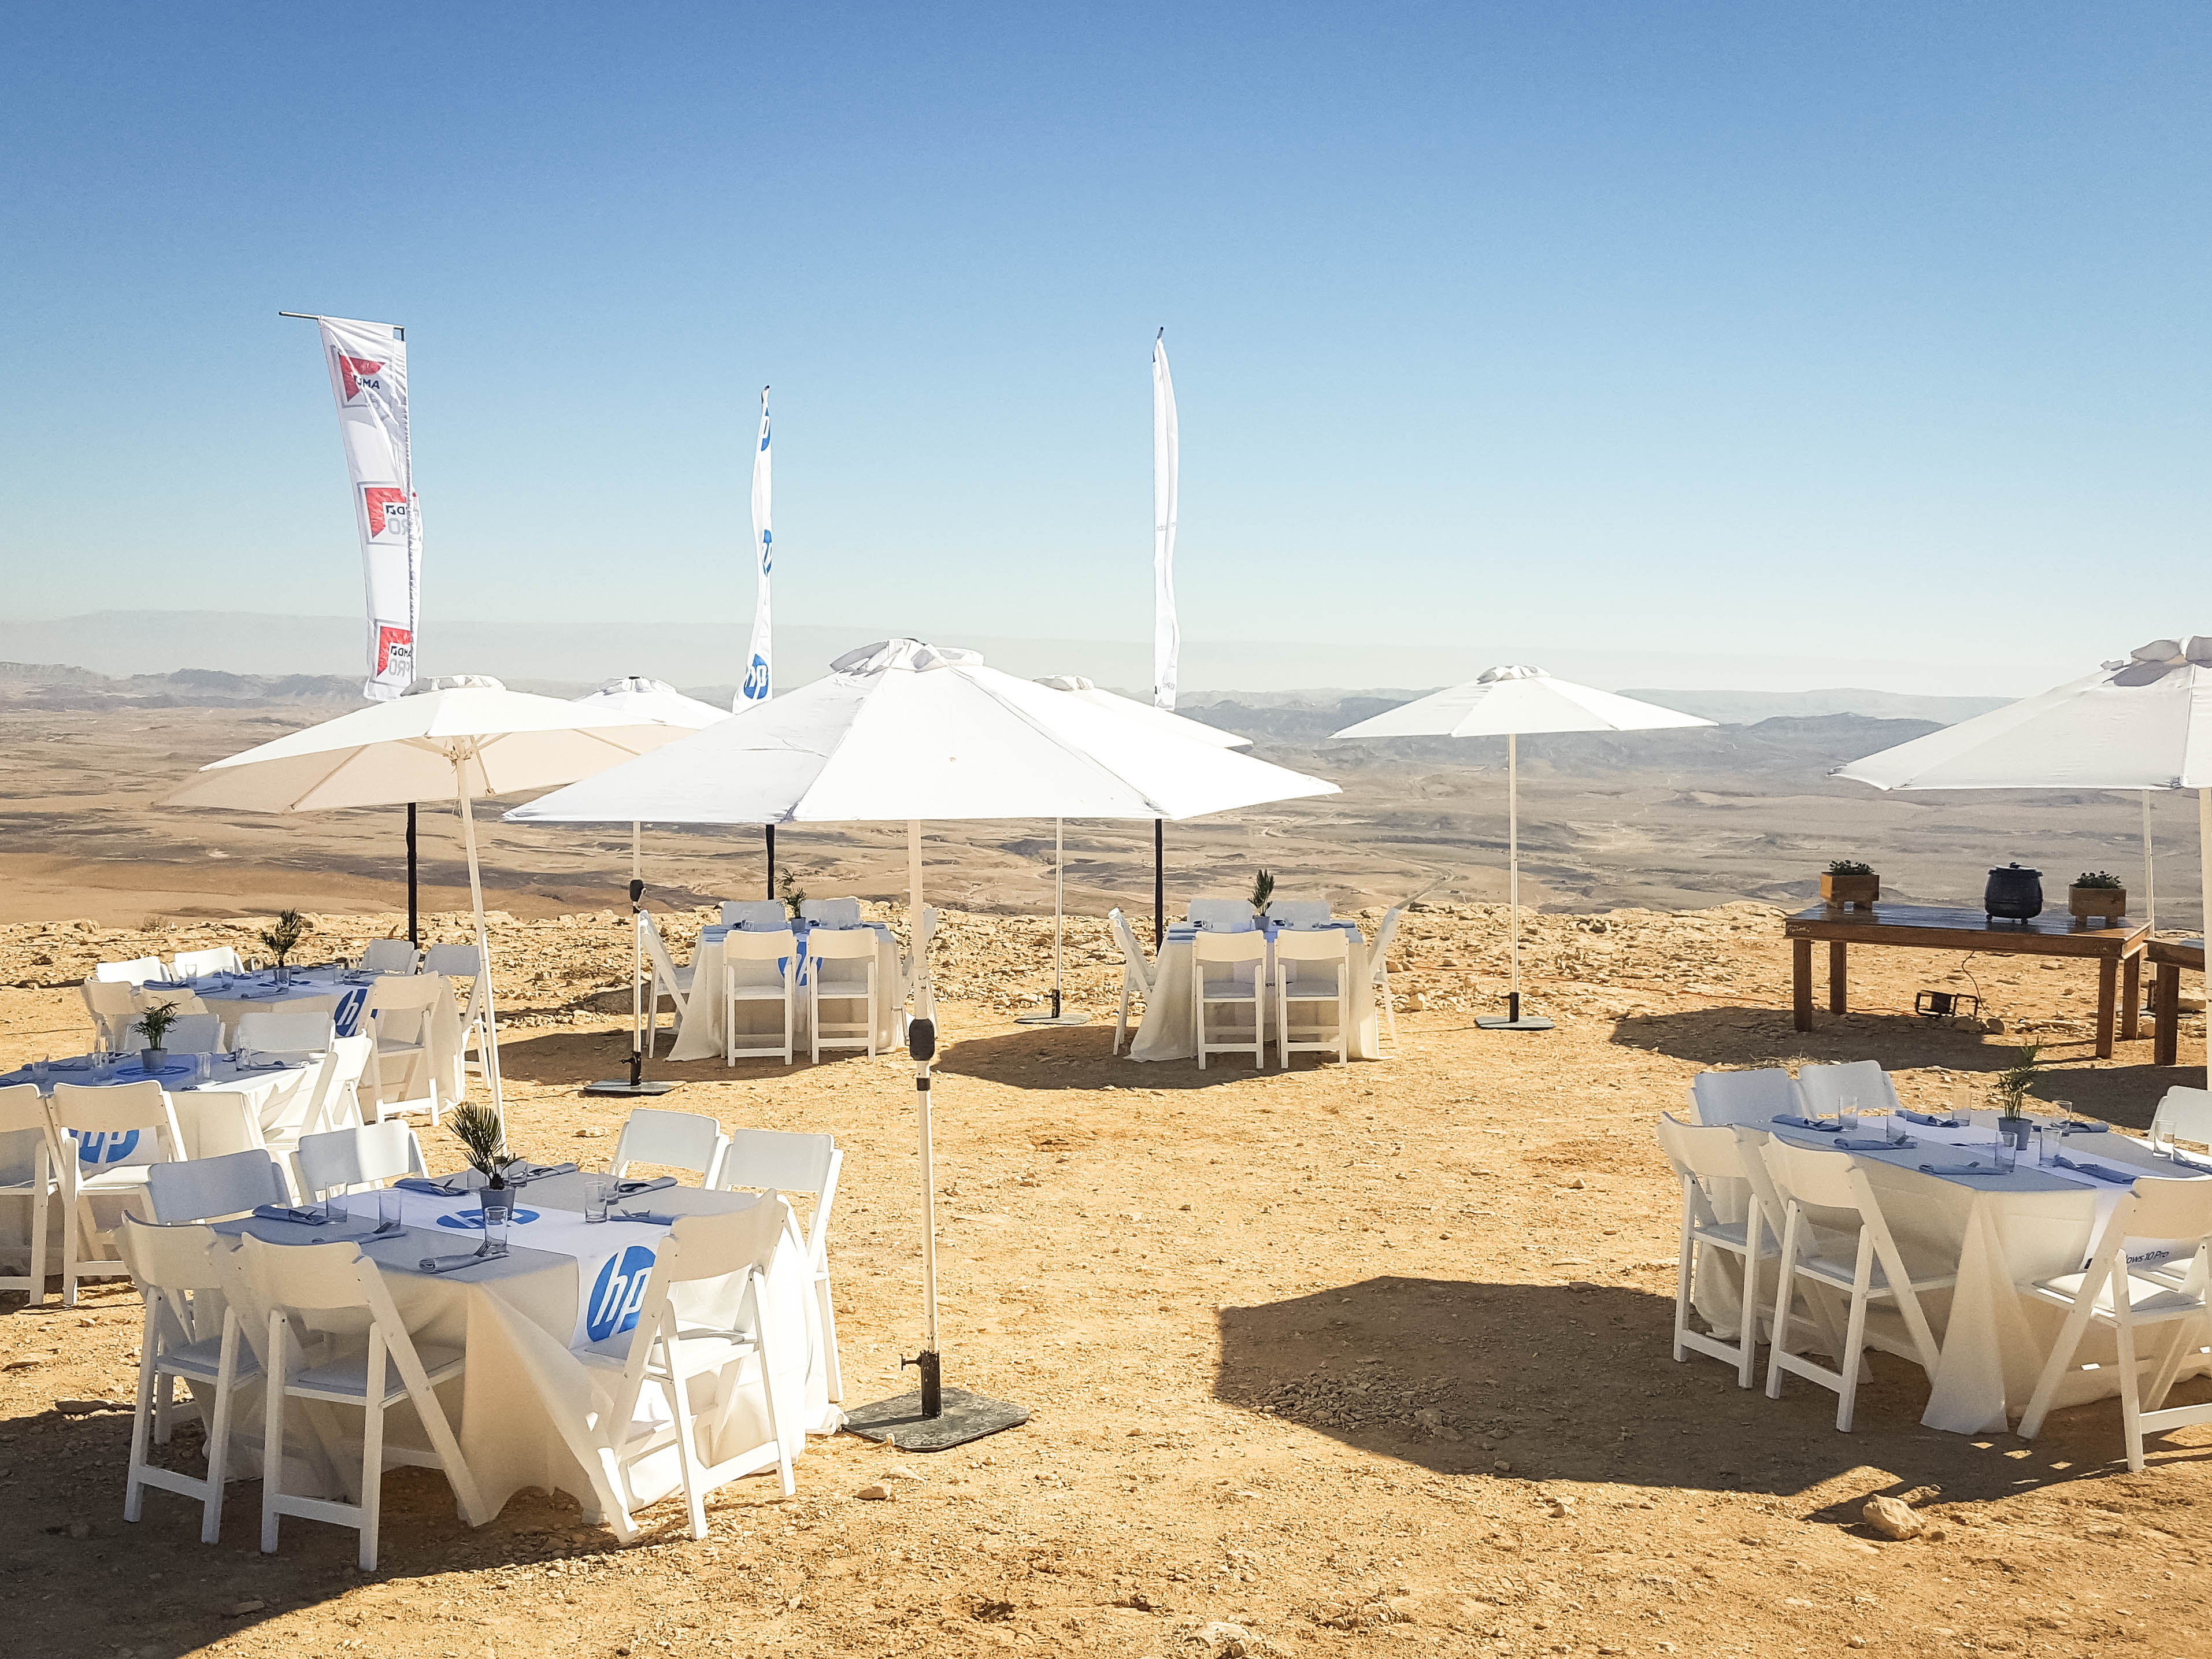 Desert incentive retreats Israel